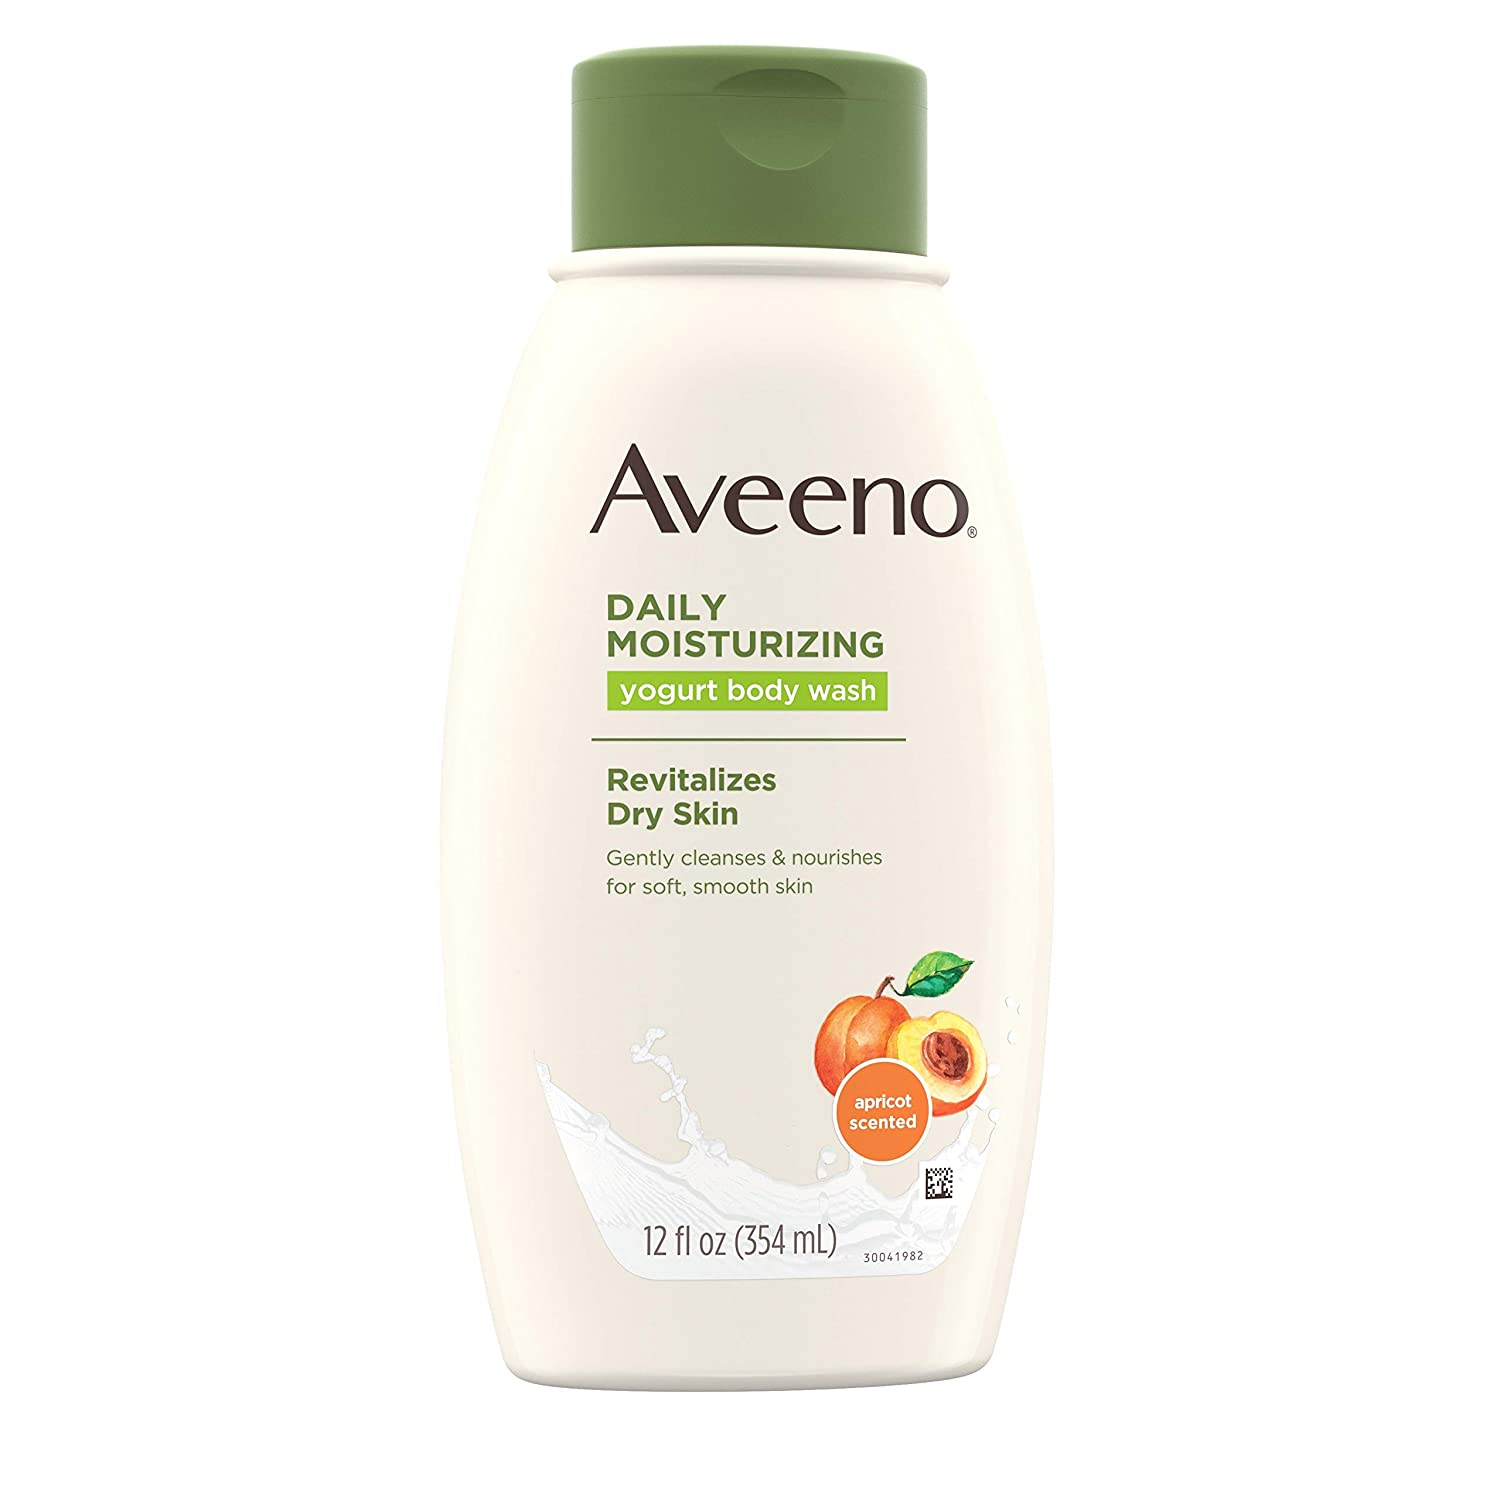 Aveeno Daily Moisturizing Yogurt Body Wash with Soothing Oat Apricot Scent, Gentle Soap-Free Body Cleanser for Dry Skin, Dye-Free Hypoallergenic, 12 fl. oz